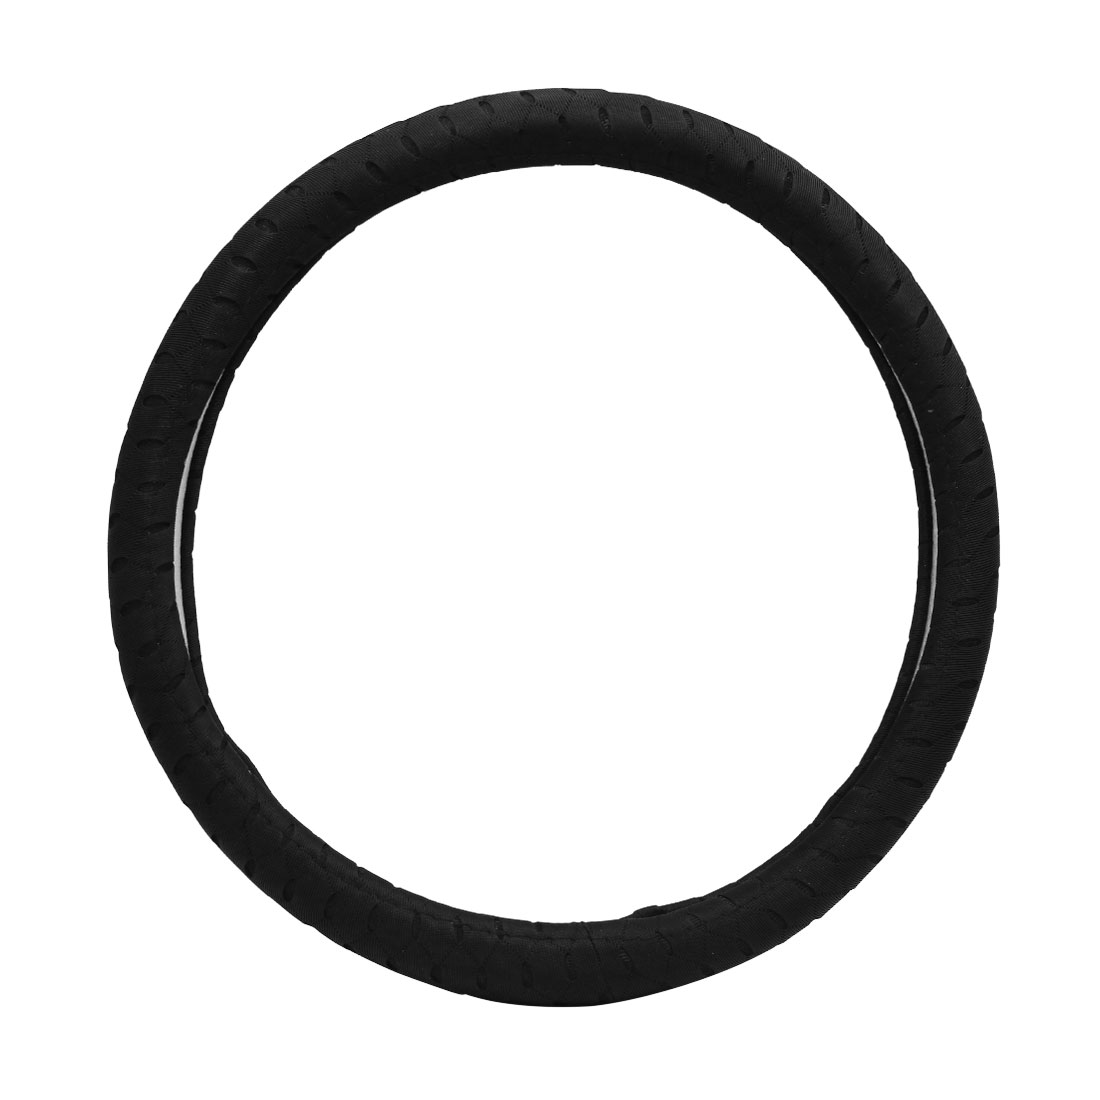 Black Comfortable Steering Wheel Cover Protector for Vehicle Car 39-40CM